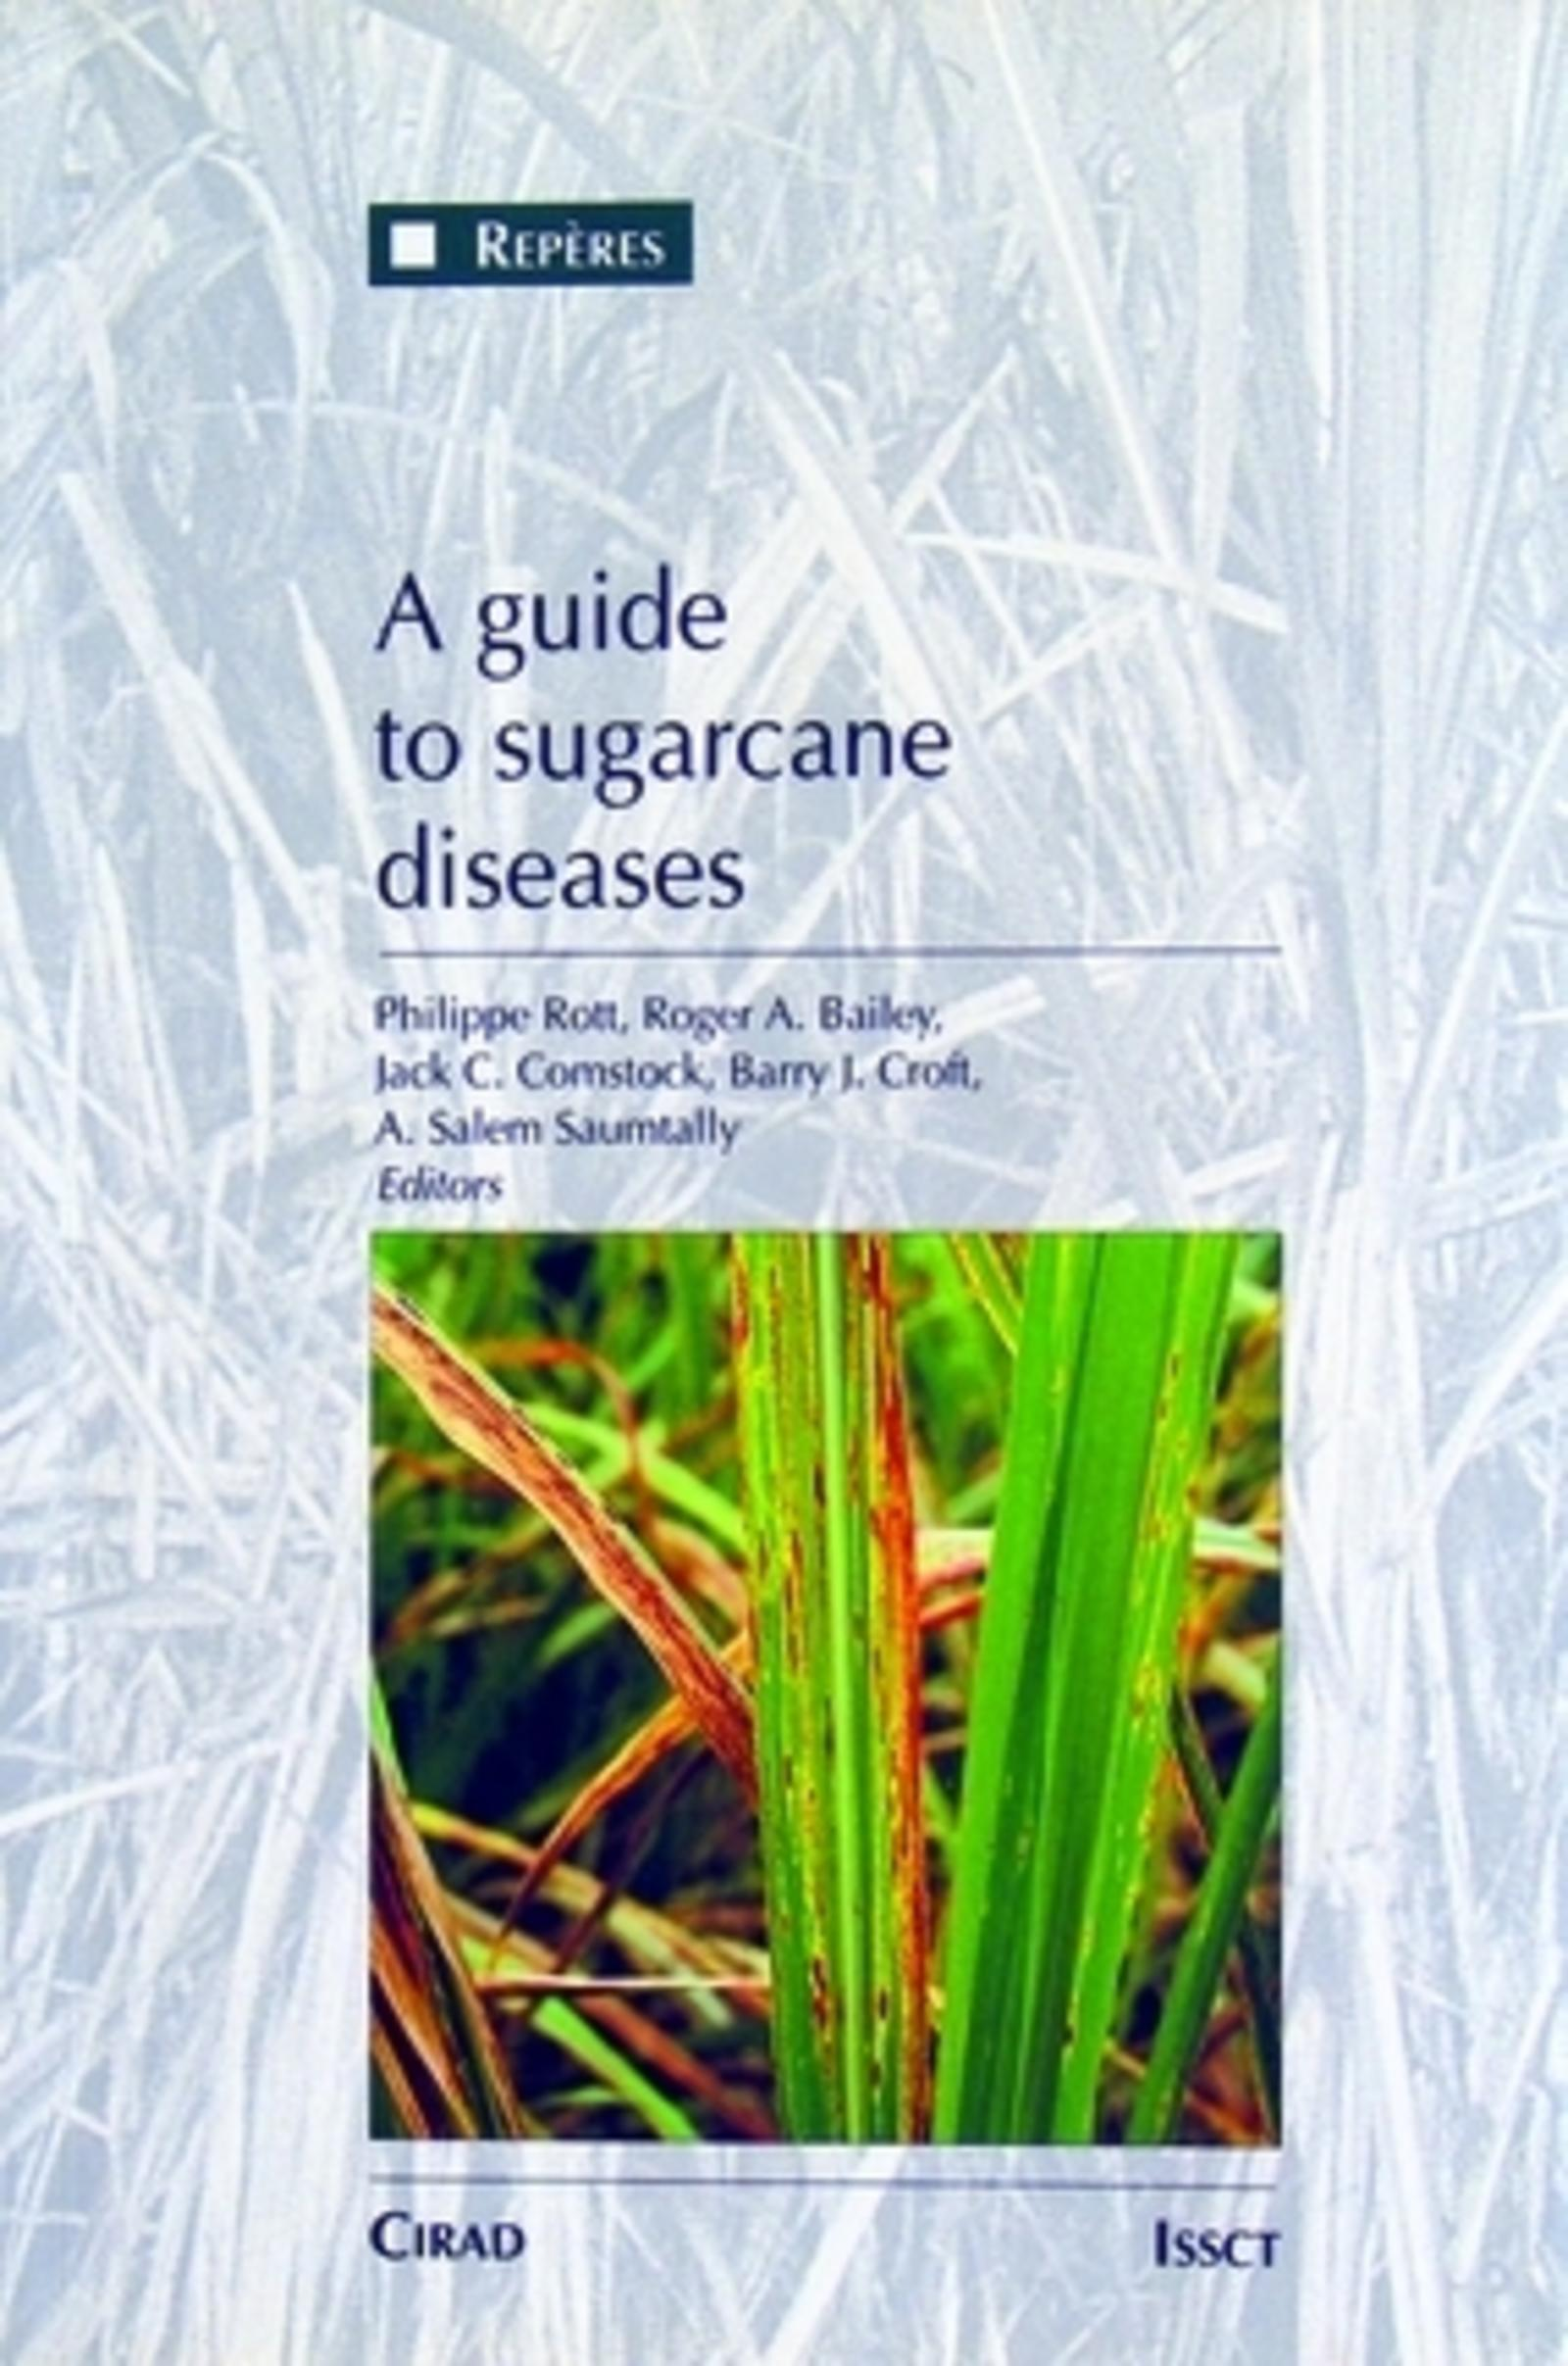 A GUIDE TO SUGARCANE DISEASES